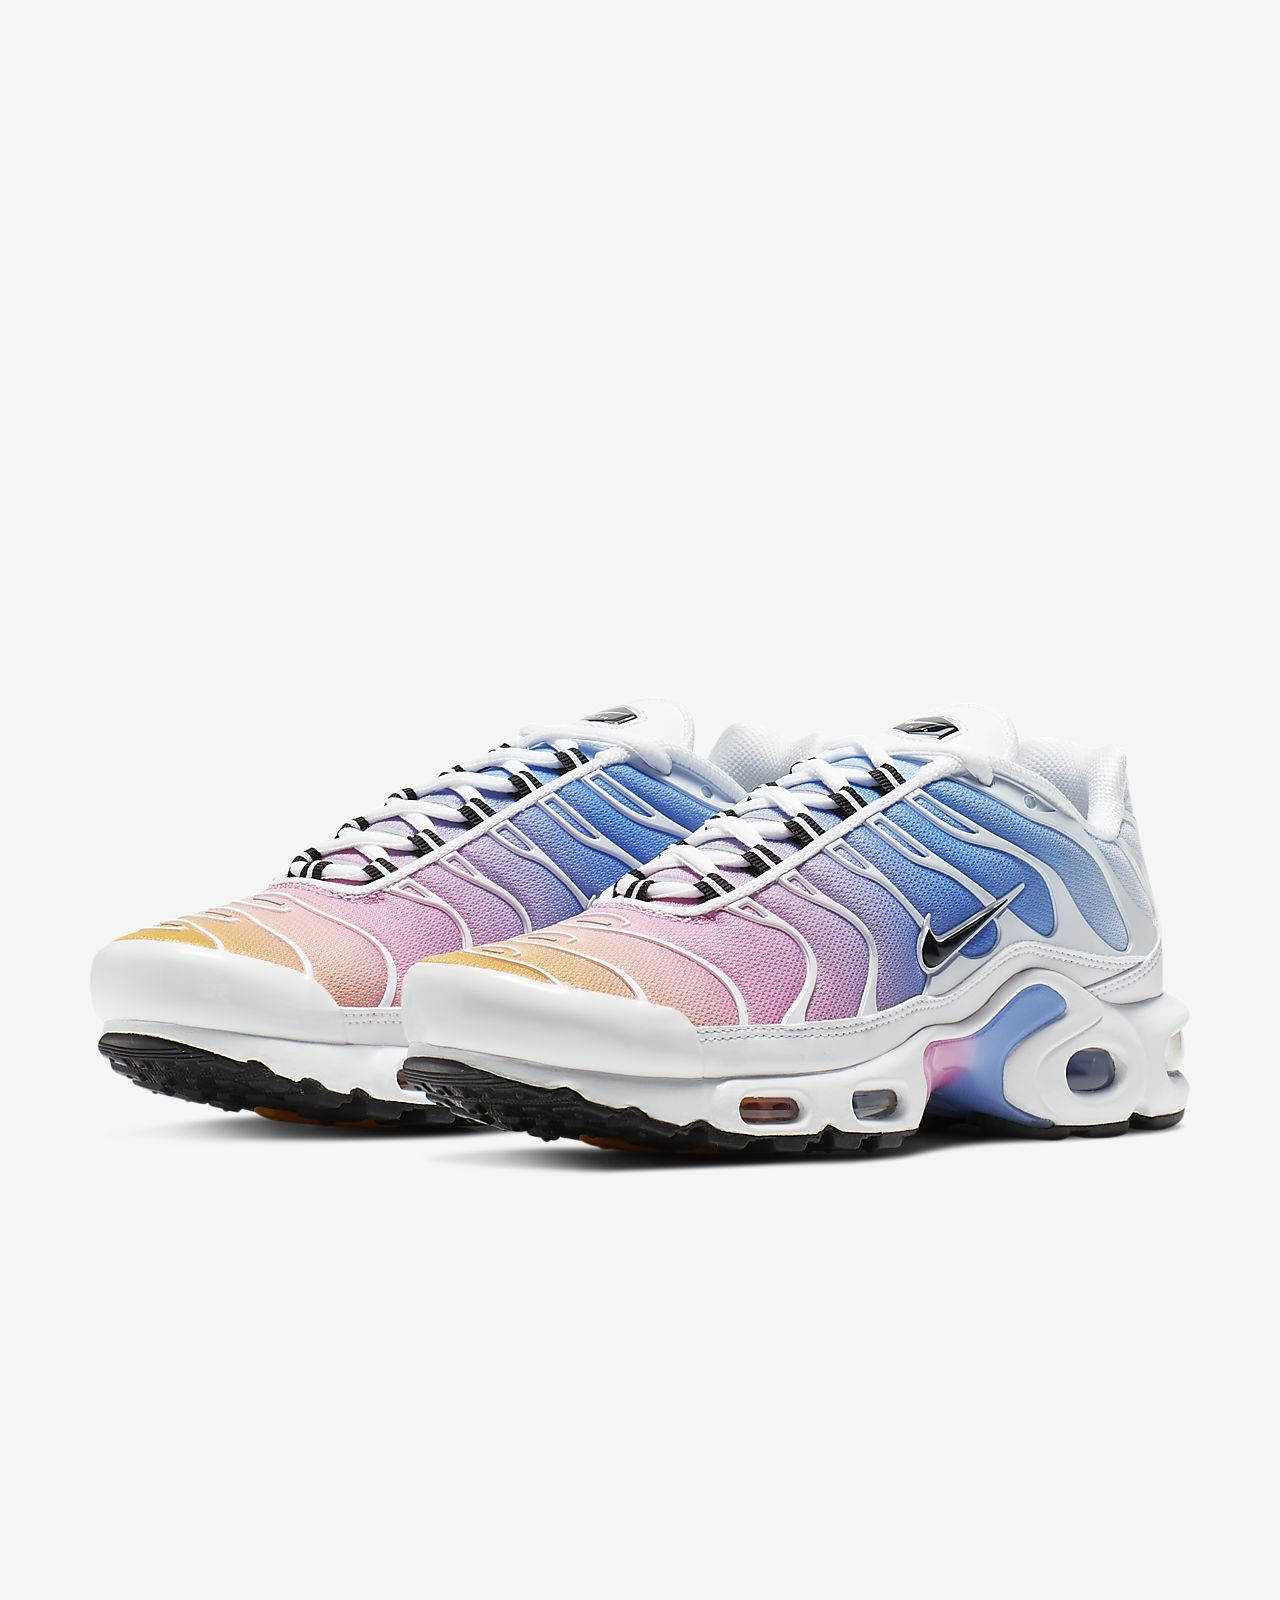 new product 715a1 1306a Nike Air Max Plus Shoe